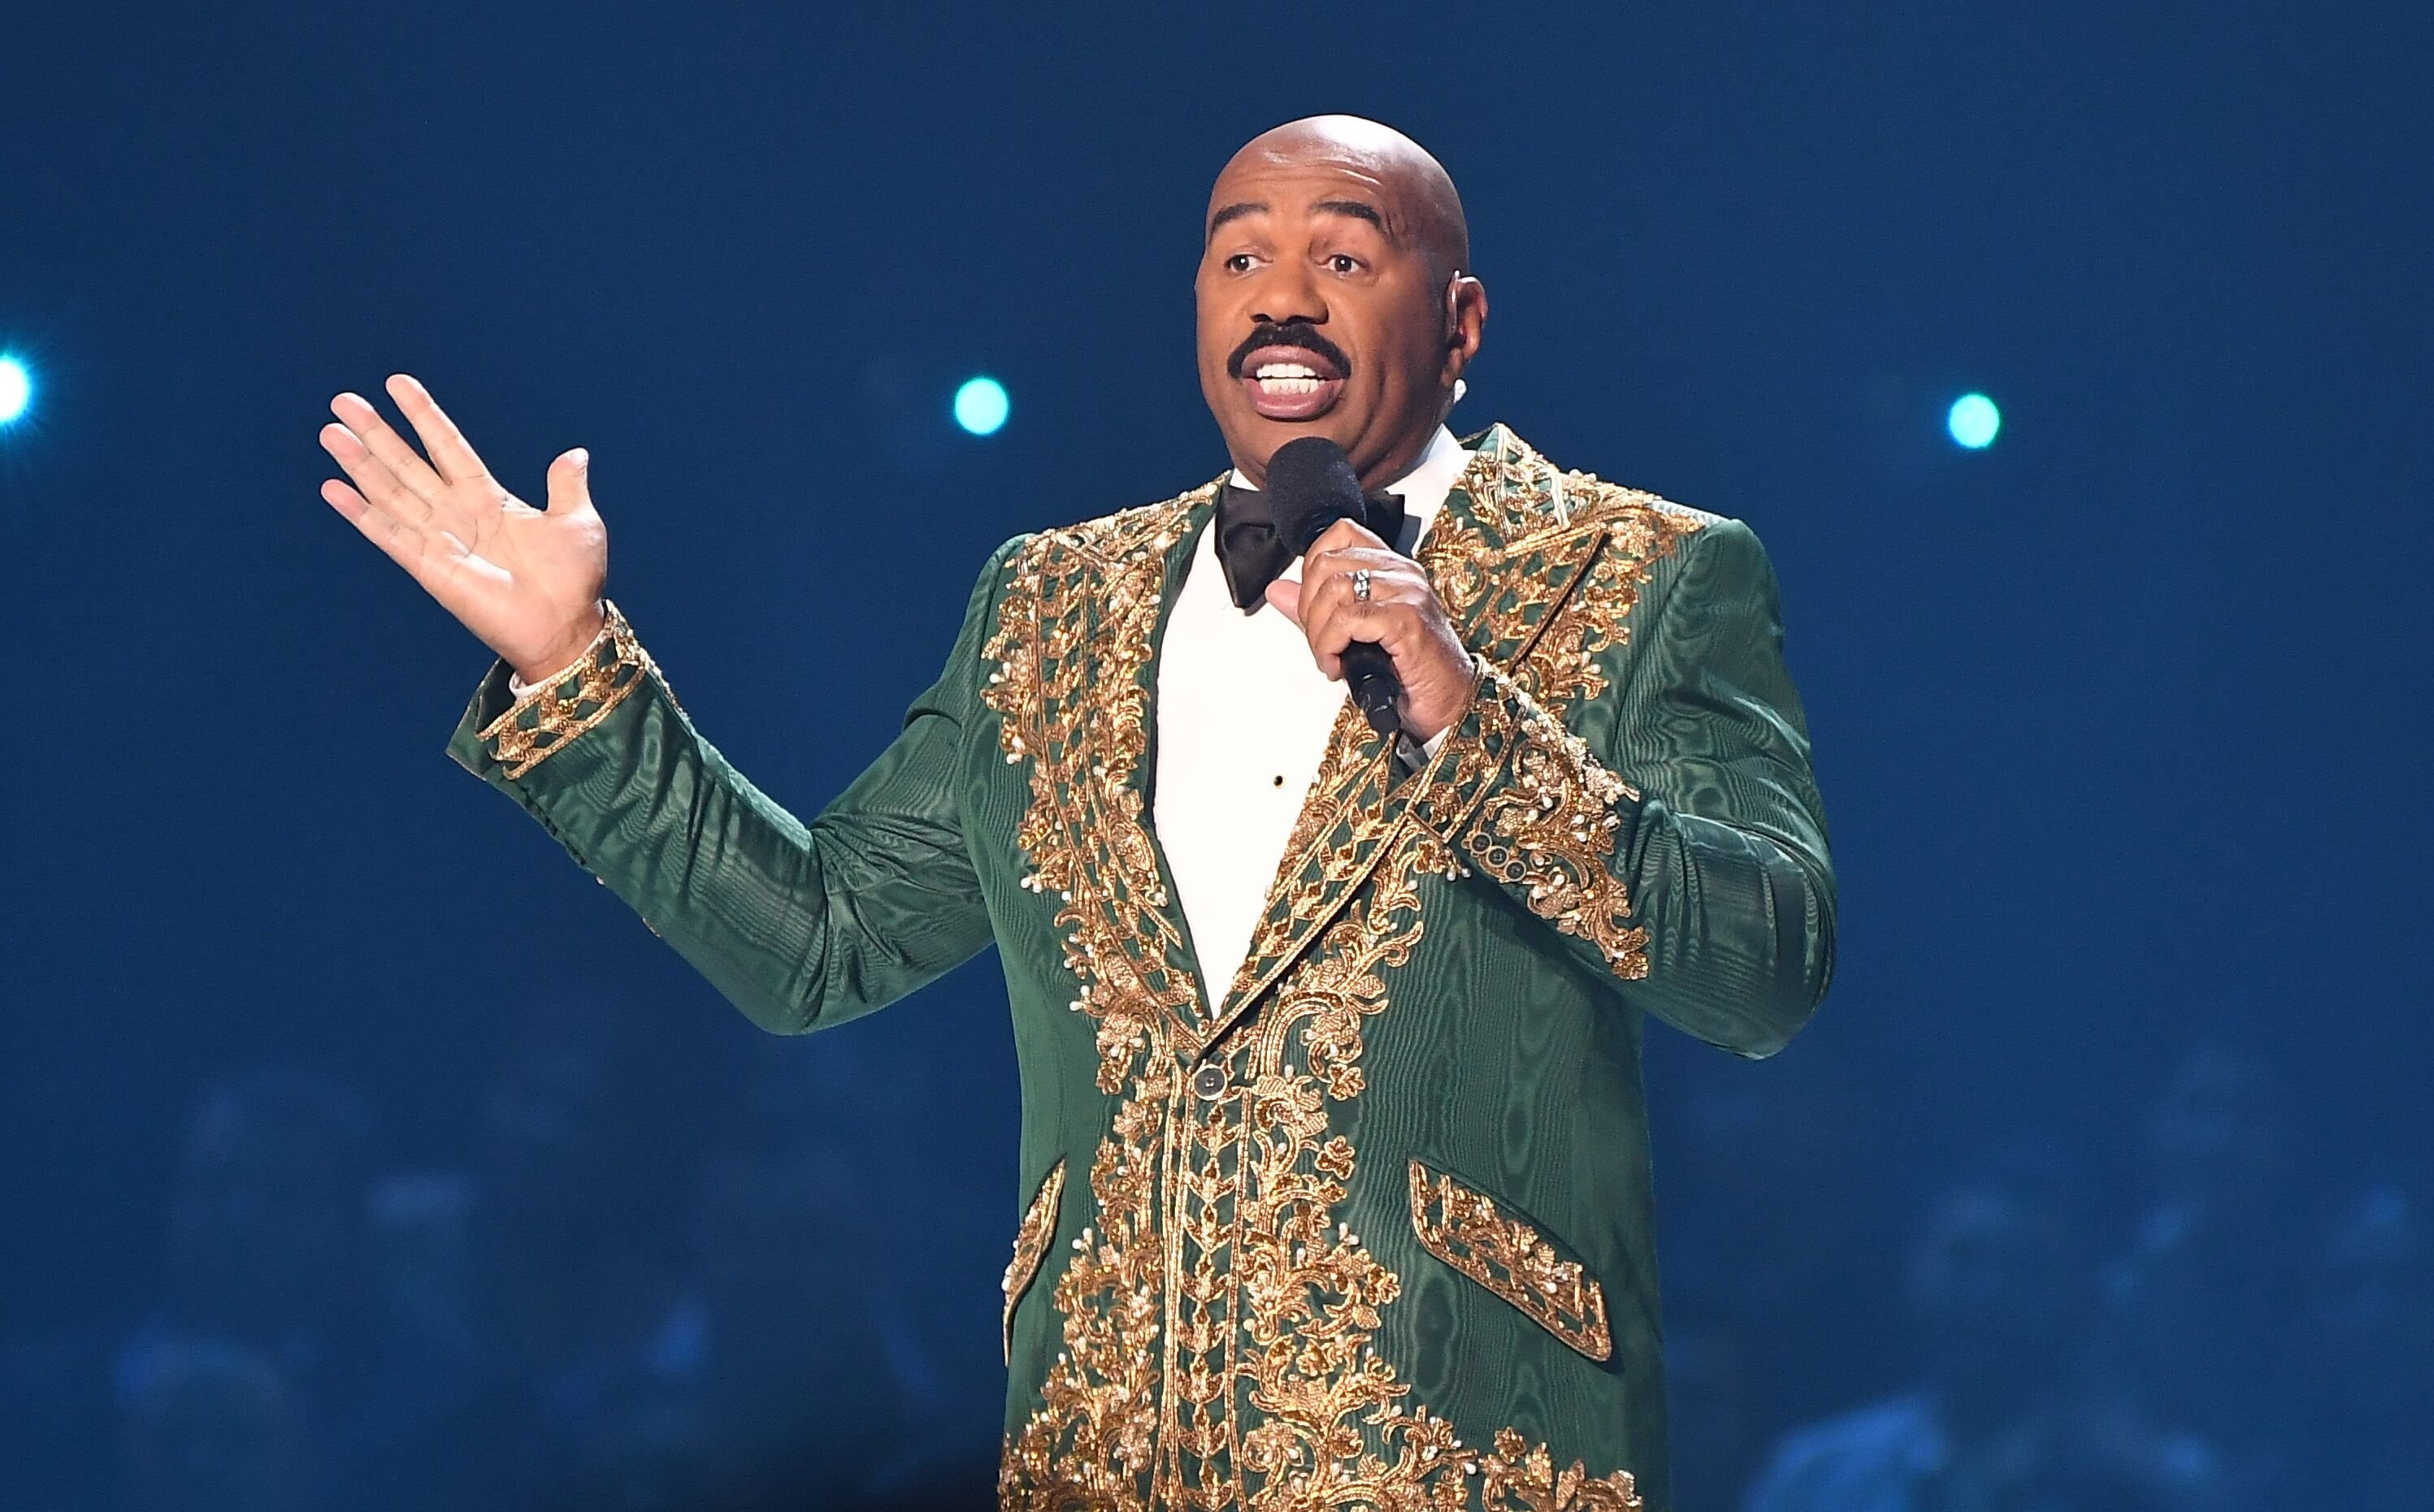 Steve Harvey at the 2019 Miss Universe pageant/ Source: Getty Images